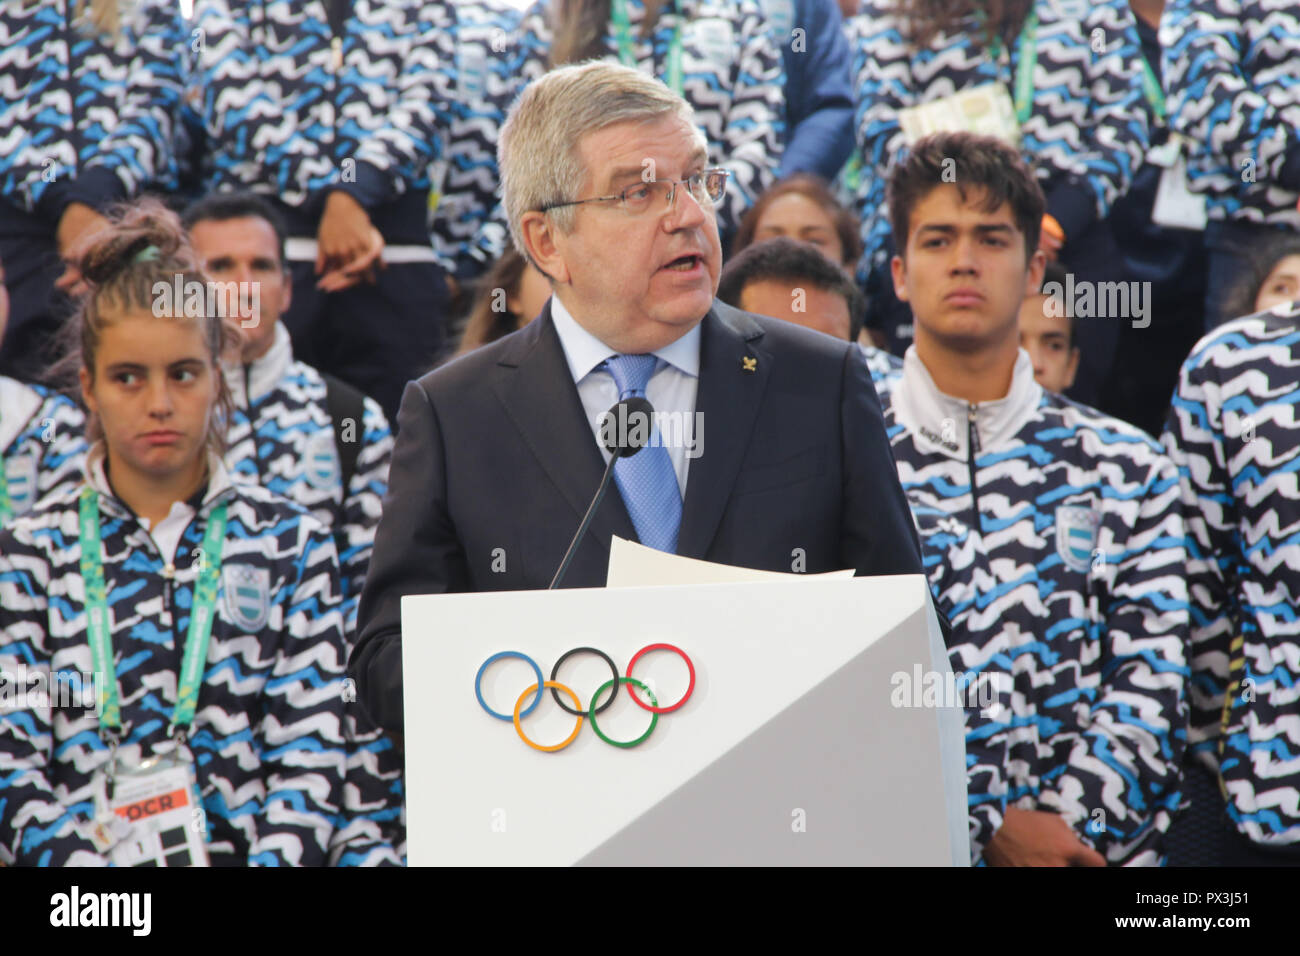 Thomas Bach, president of IOC and authorities during closing ceremony of 3th Youth Olympic Games of Buenos Aires, Argentina.  - Stock Image